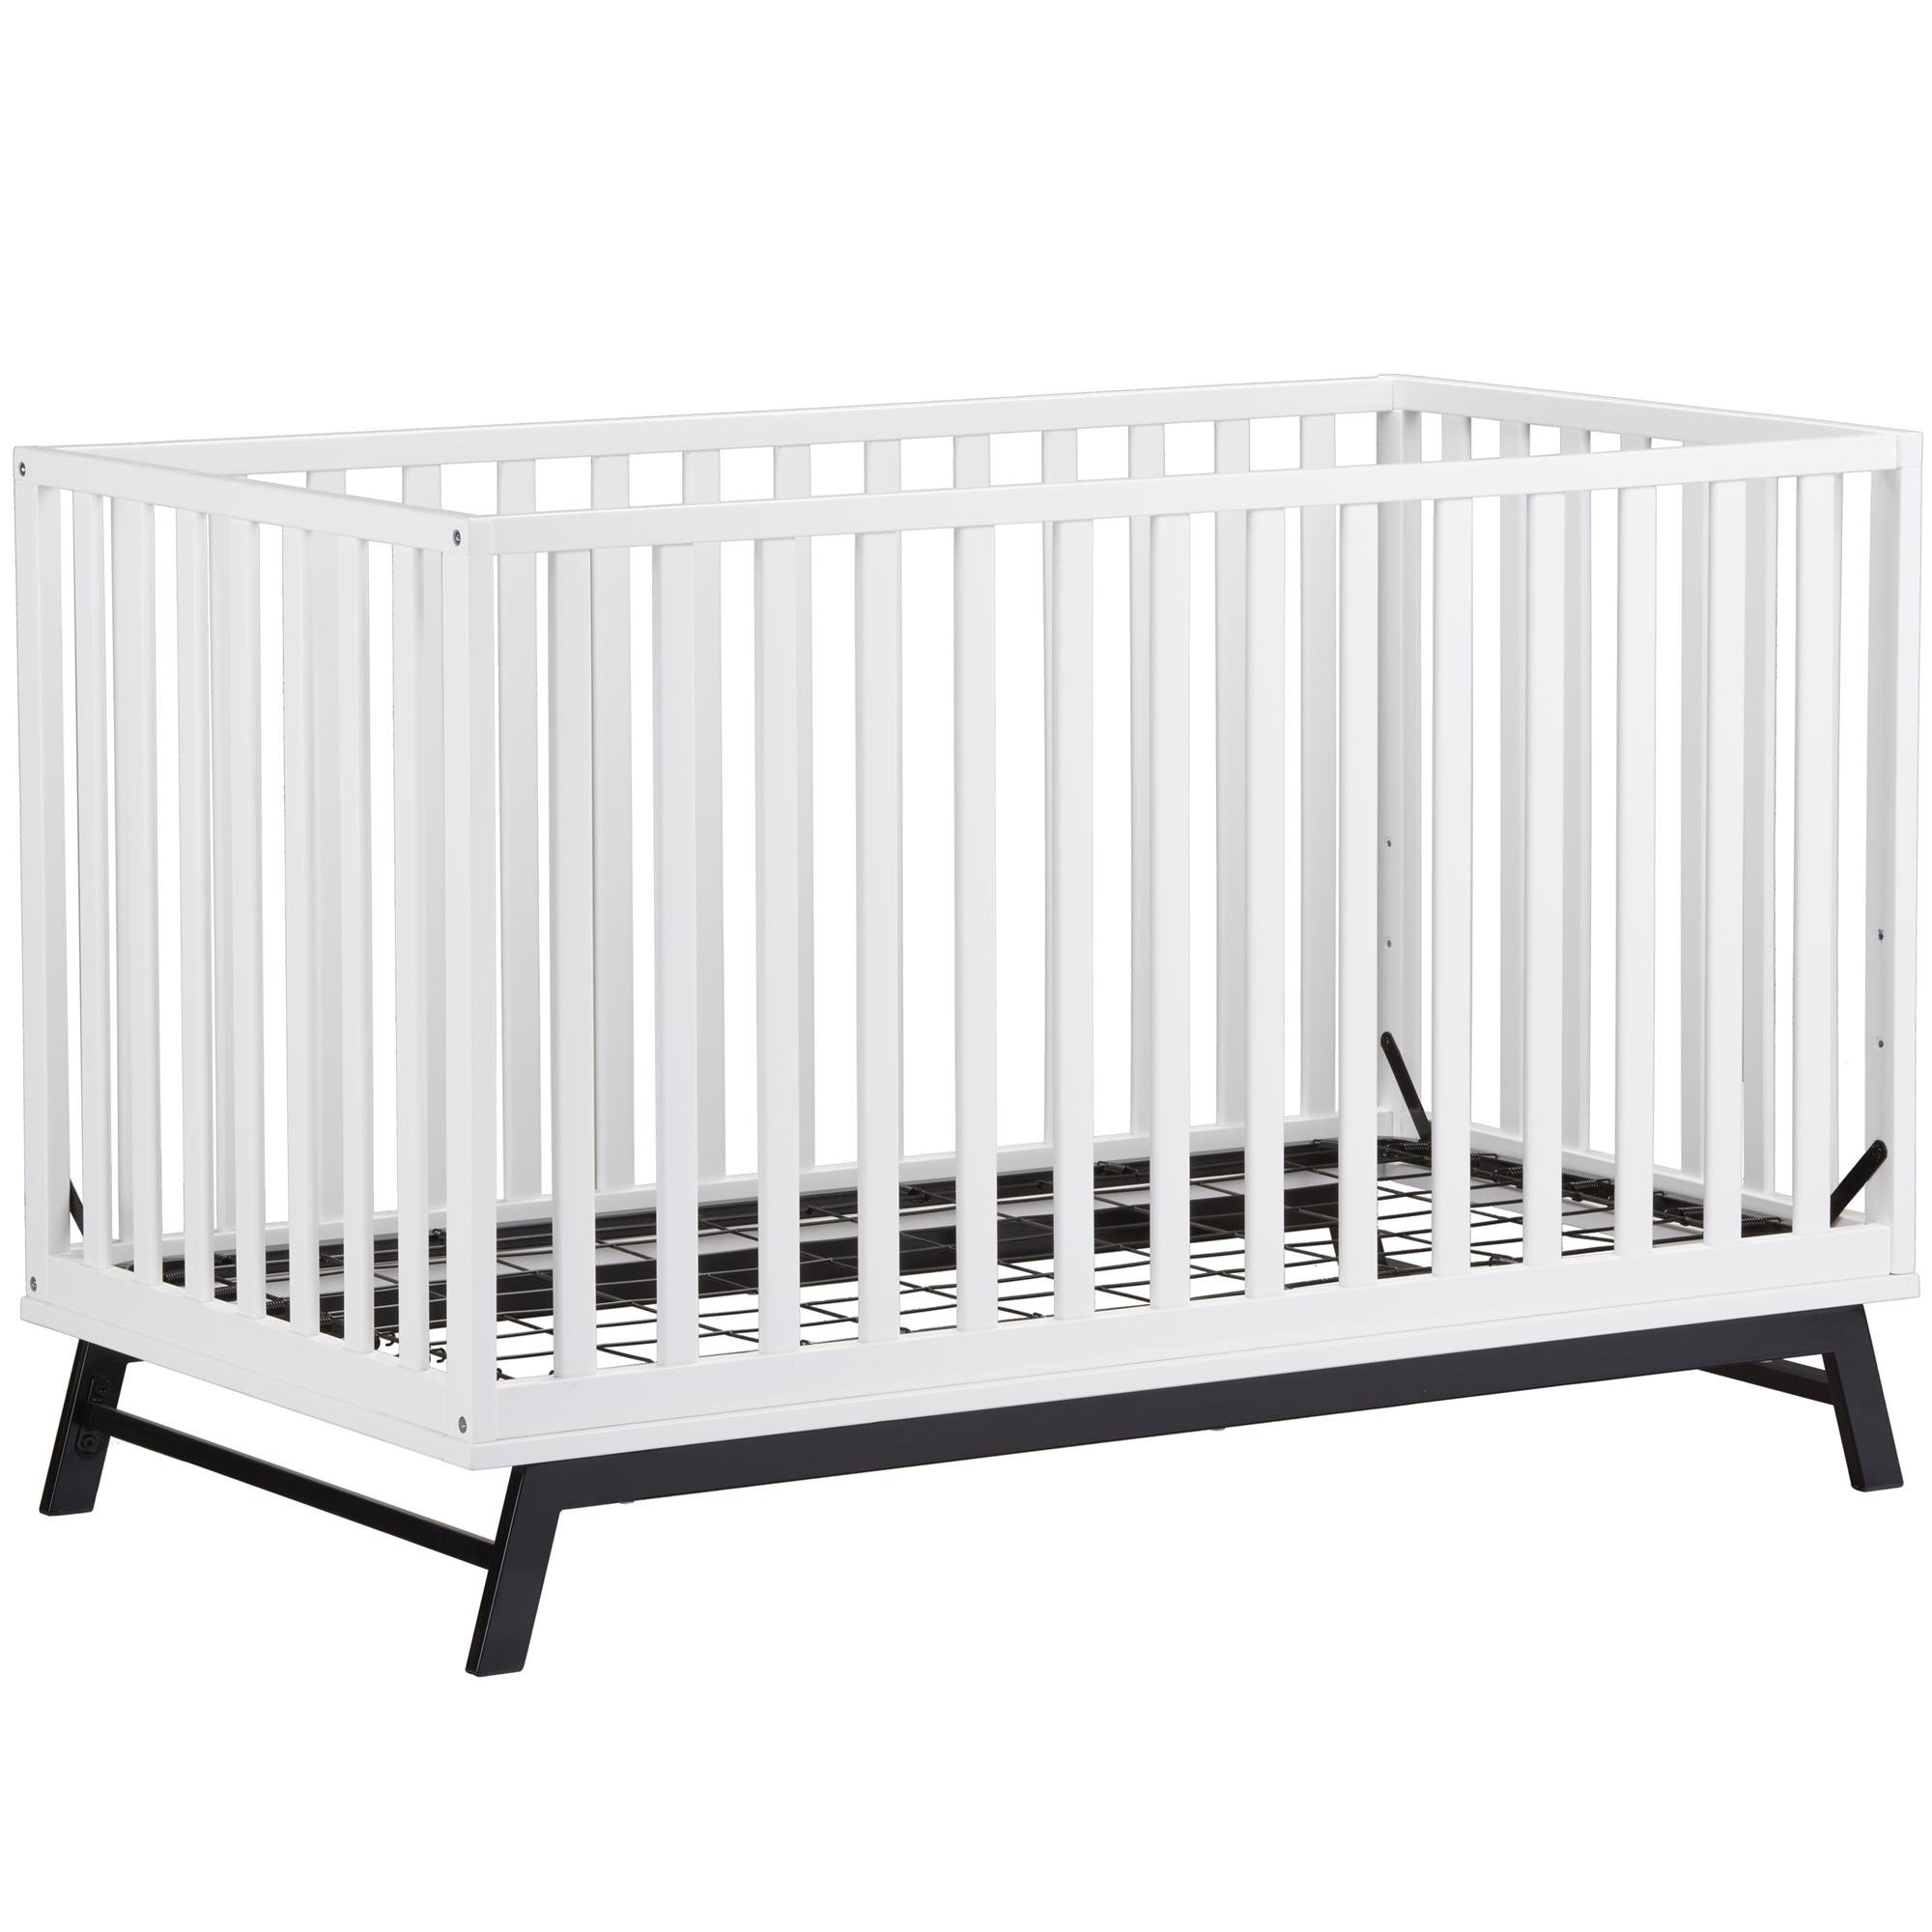 Little Seeds Rowan Valley Lark Urban Crib, White